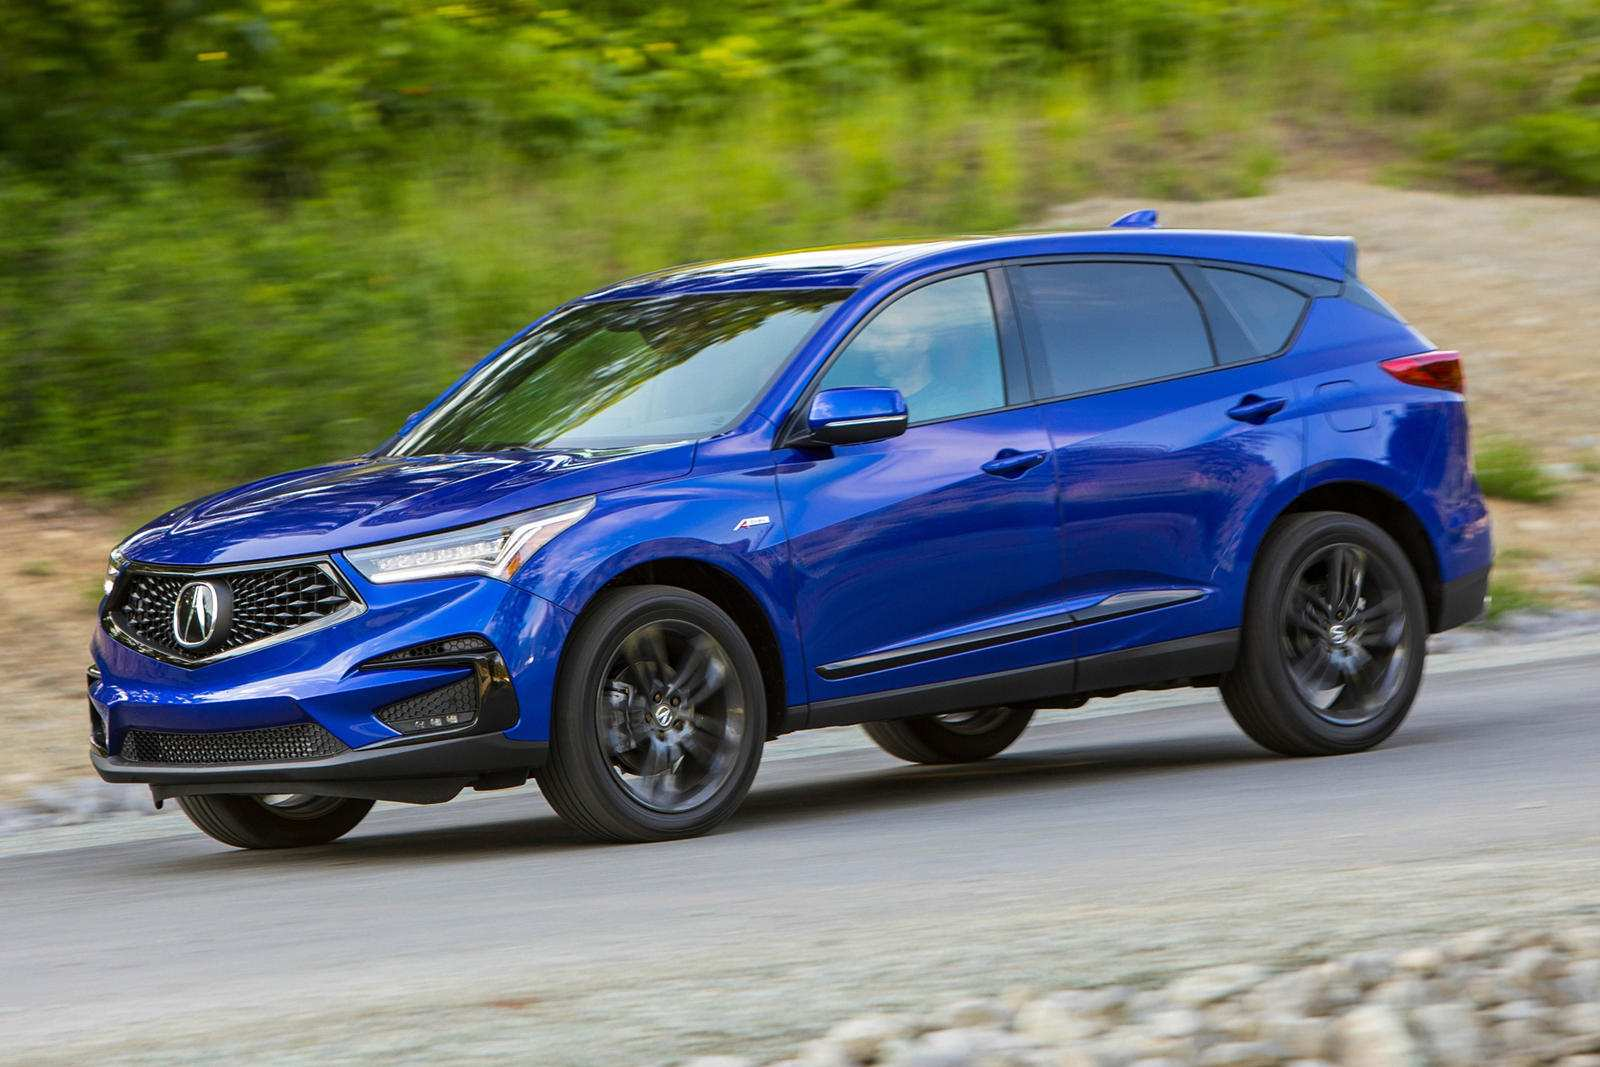 65 Concept of Acura Suv 2020 Specs and Review for Acura Suv 2020